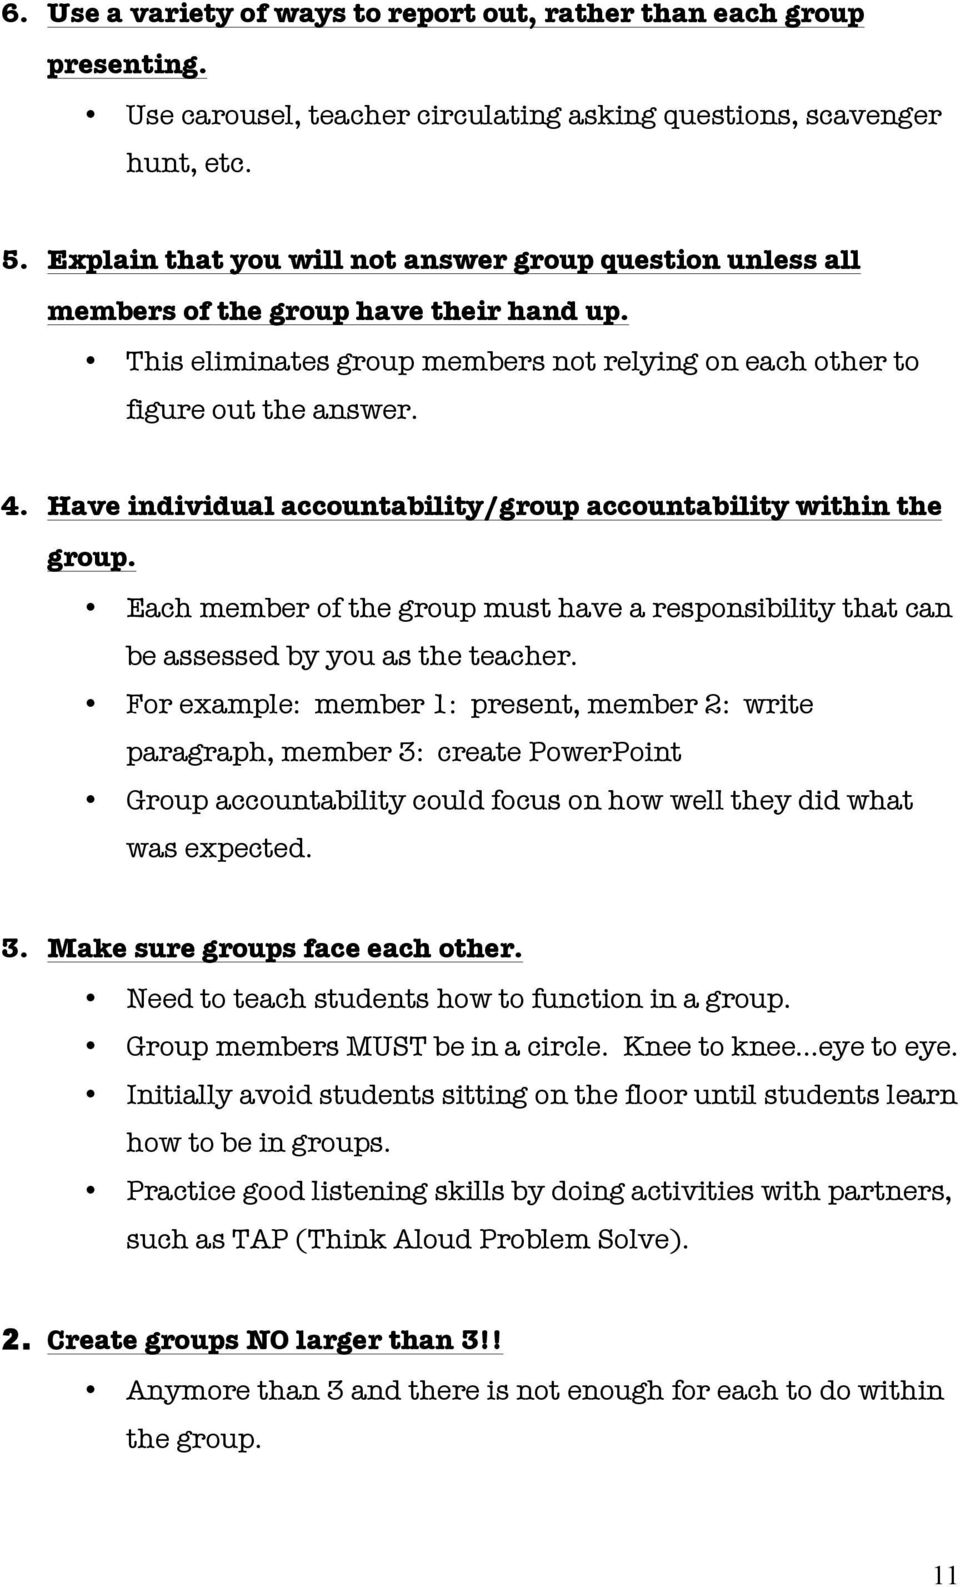 Have individual accountability/group accountability within the group. Each member of the group must have a responsibility that can be assessed by you as the teacher.